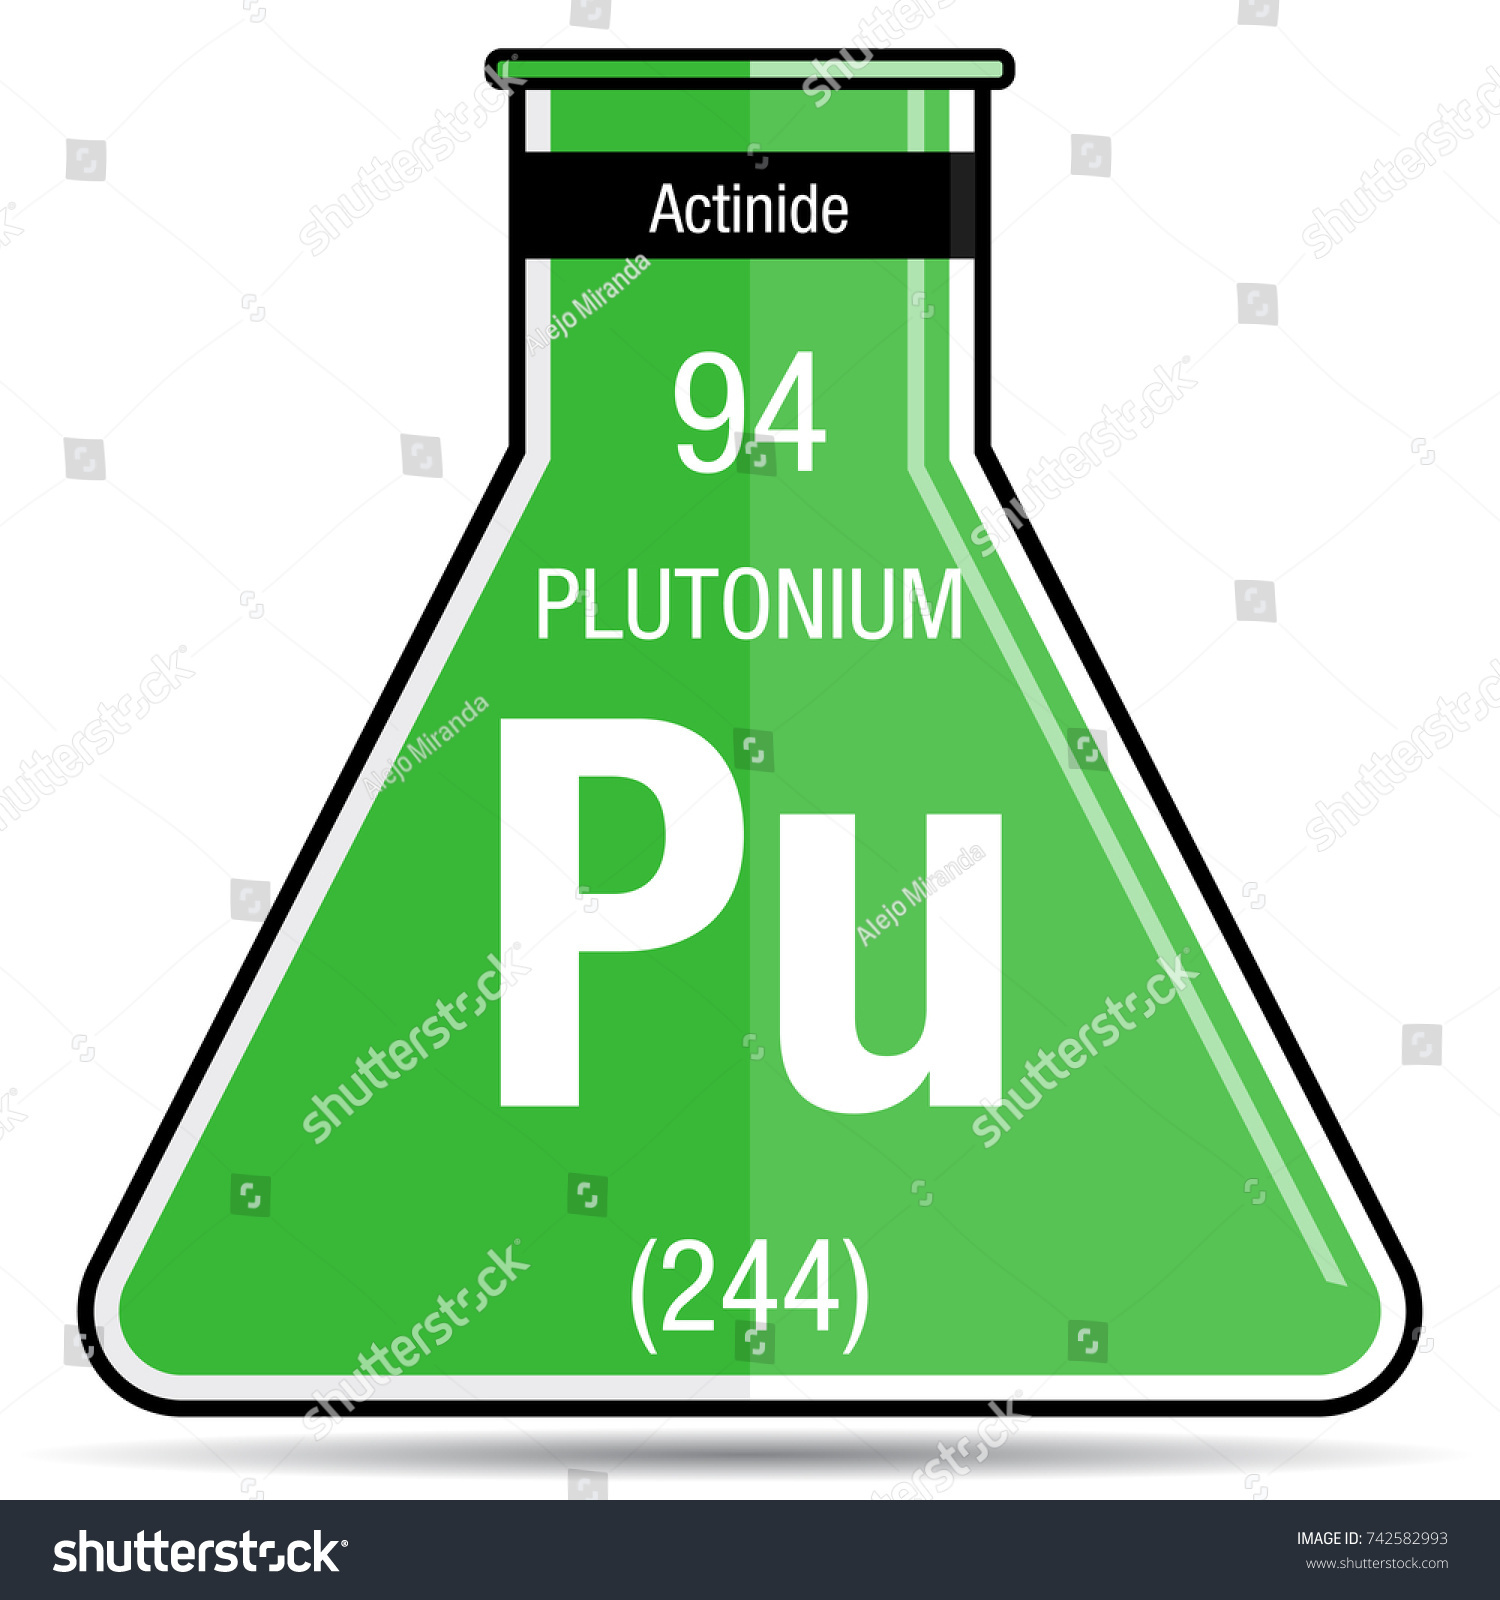 Plutonium symbol on chemical flask element stock vector 742582993 plutonium symbol on chemical flask element number 94 of the periodic table of the elements gamestrikefo Choice Image